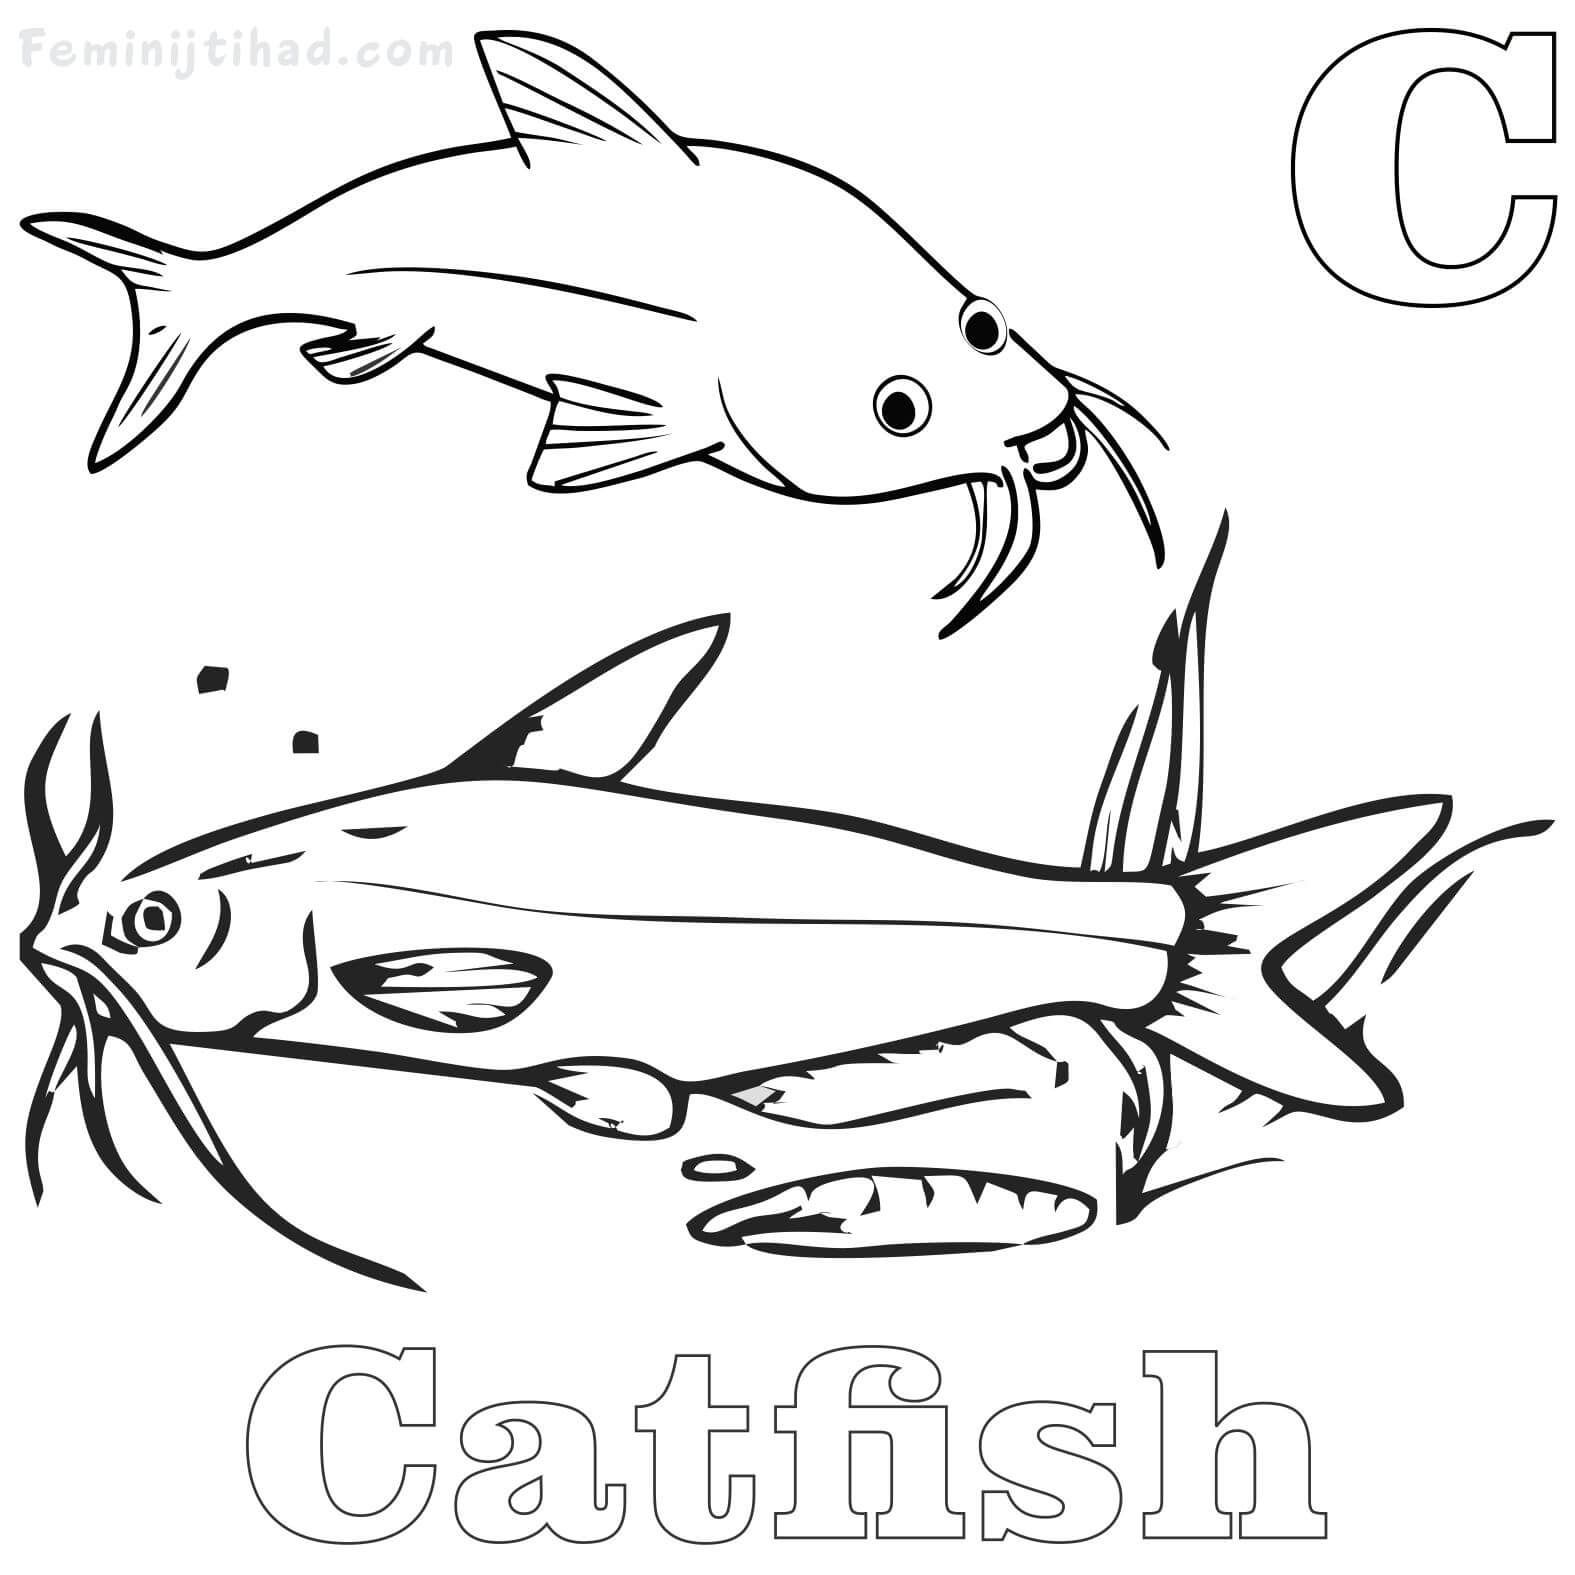 Catfish Coloring Pages Printable Free Pdf Free Coloring Sheets Animal Coloring Pages Coloring Pages Free Coloring Sheets